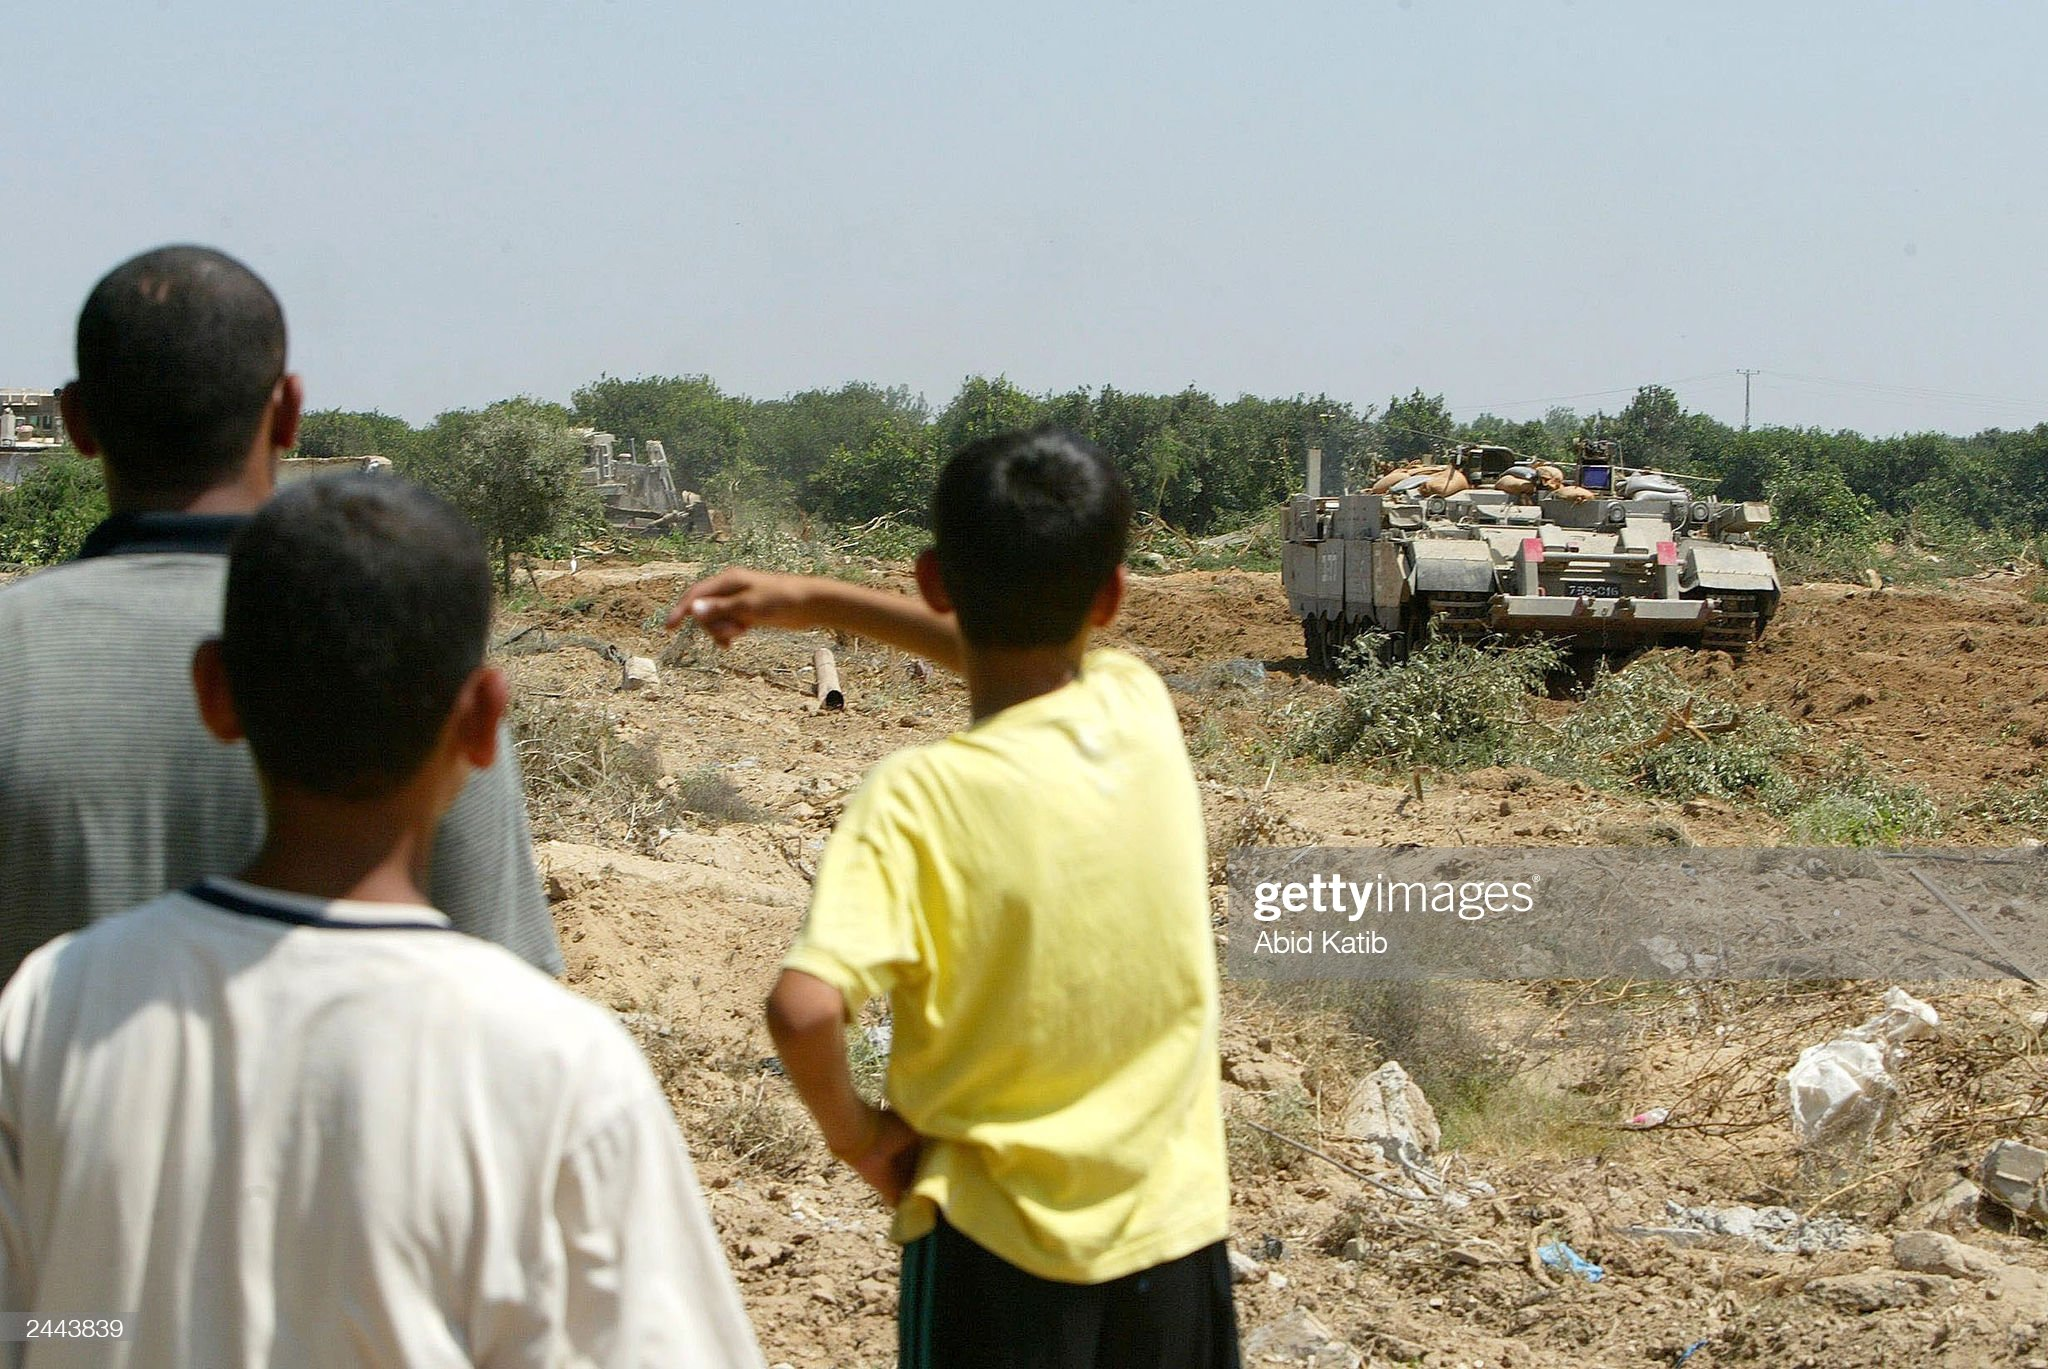 https://media.gettyimages.com/photos/palestinian-youths-watch-as-israeli-tanks-and-bulldozers-destroy-picture-id2443839?s=2048x2048